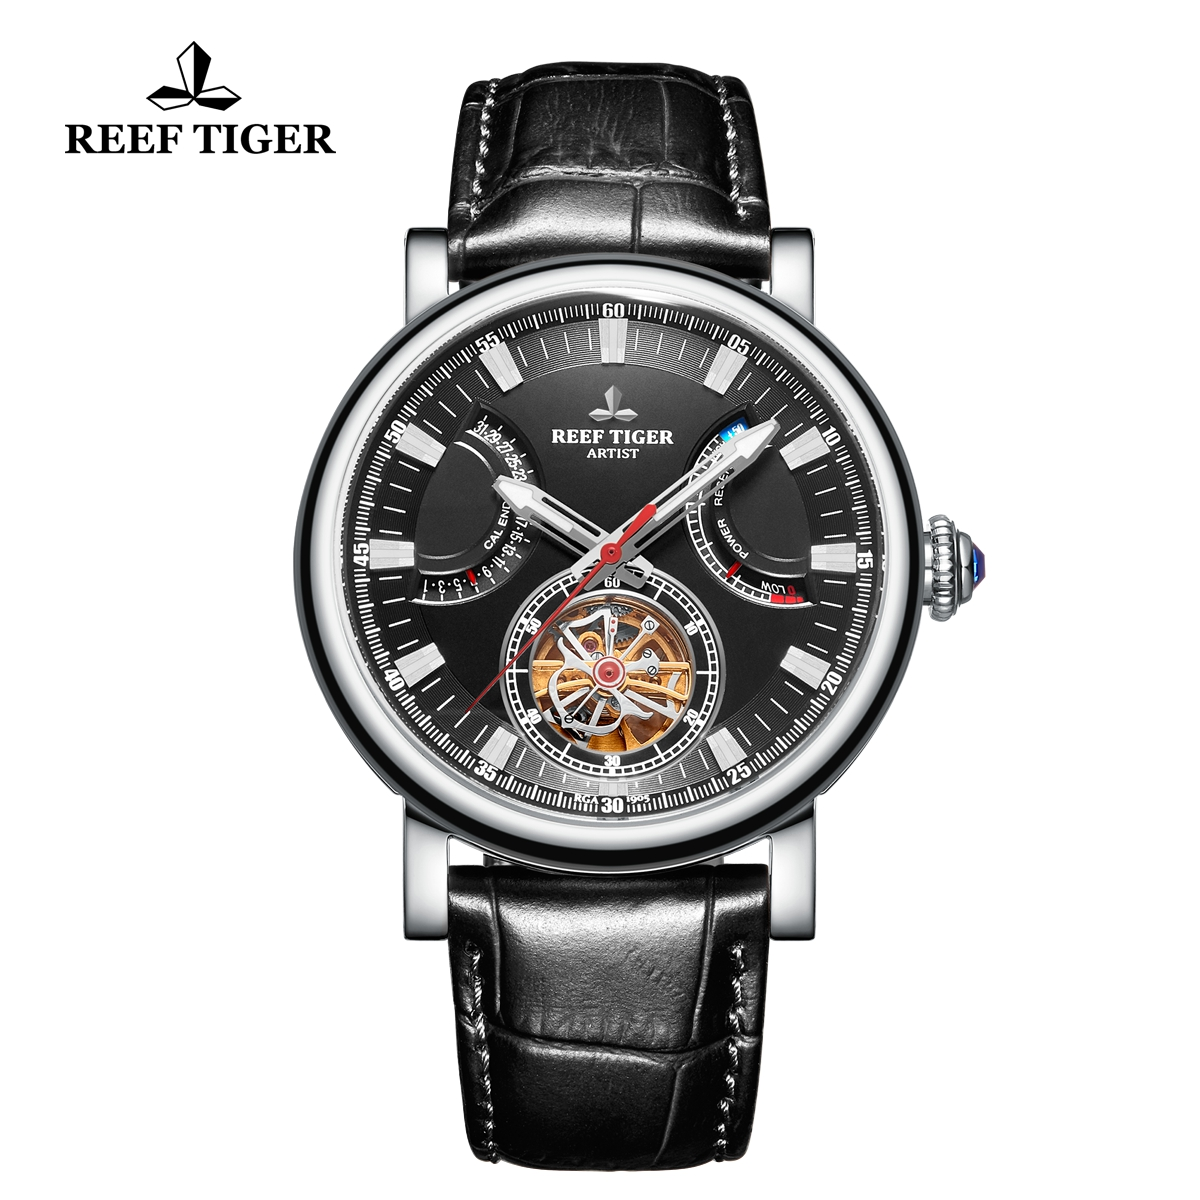 Reef Tiger Artist Photographer Solid Steel Leather Strap Black Dial Tourbillon Automatic Watch RGA1950-YBB